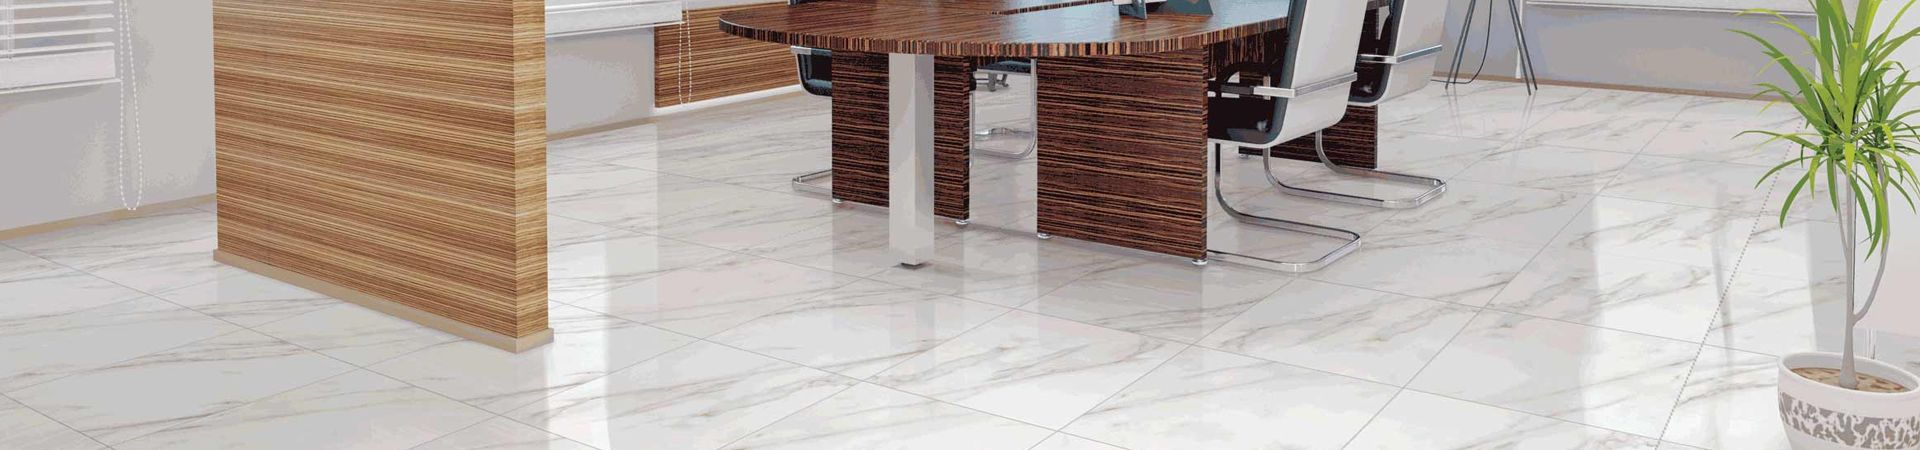 We are manufacturers and exporters of digital vitrified tiles in we are manufacturers and exporters of digital vitrified tiles in morbi gujarat india dailygadgetfo Gallery